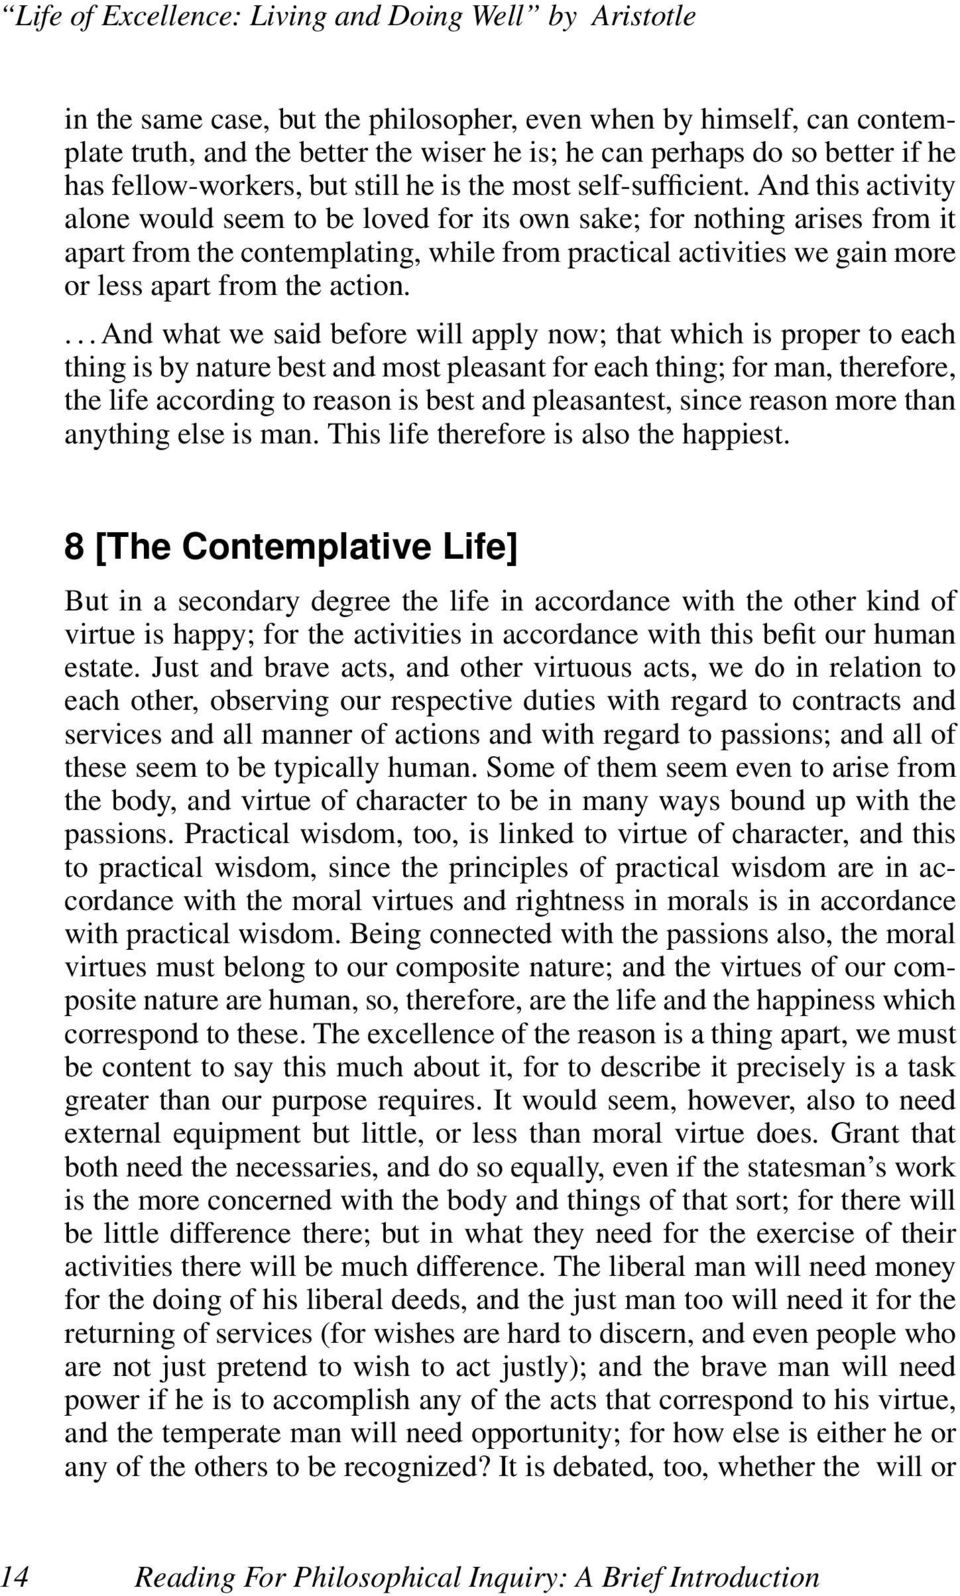 nichomachean ethics essay 4 the blackwell guide to aristotle's nicomachean ethics, edited by richard kraut 5 the  an essay on aristotle's nicomachean ethics (2004.